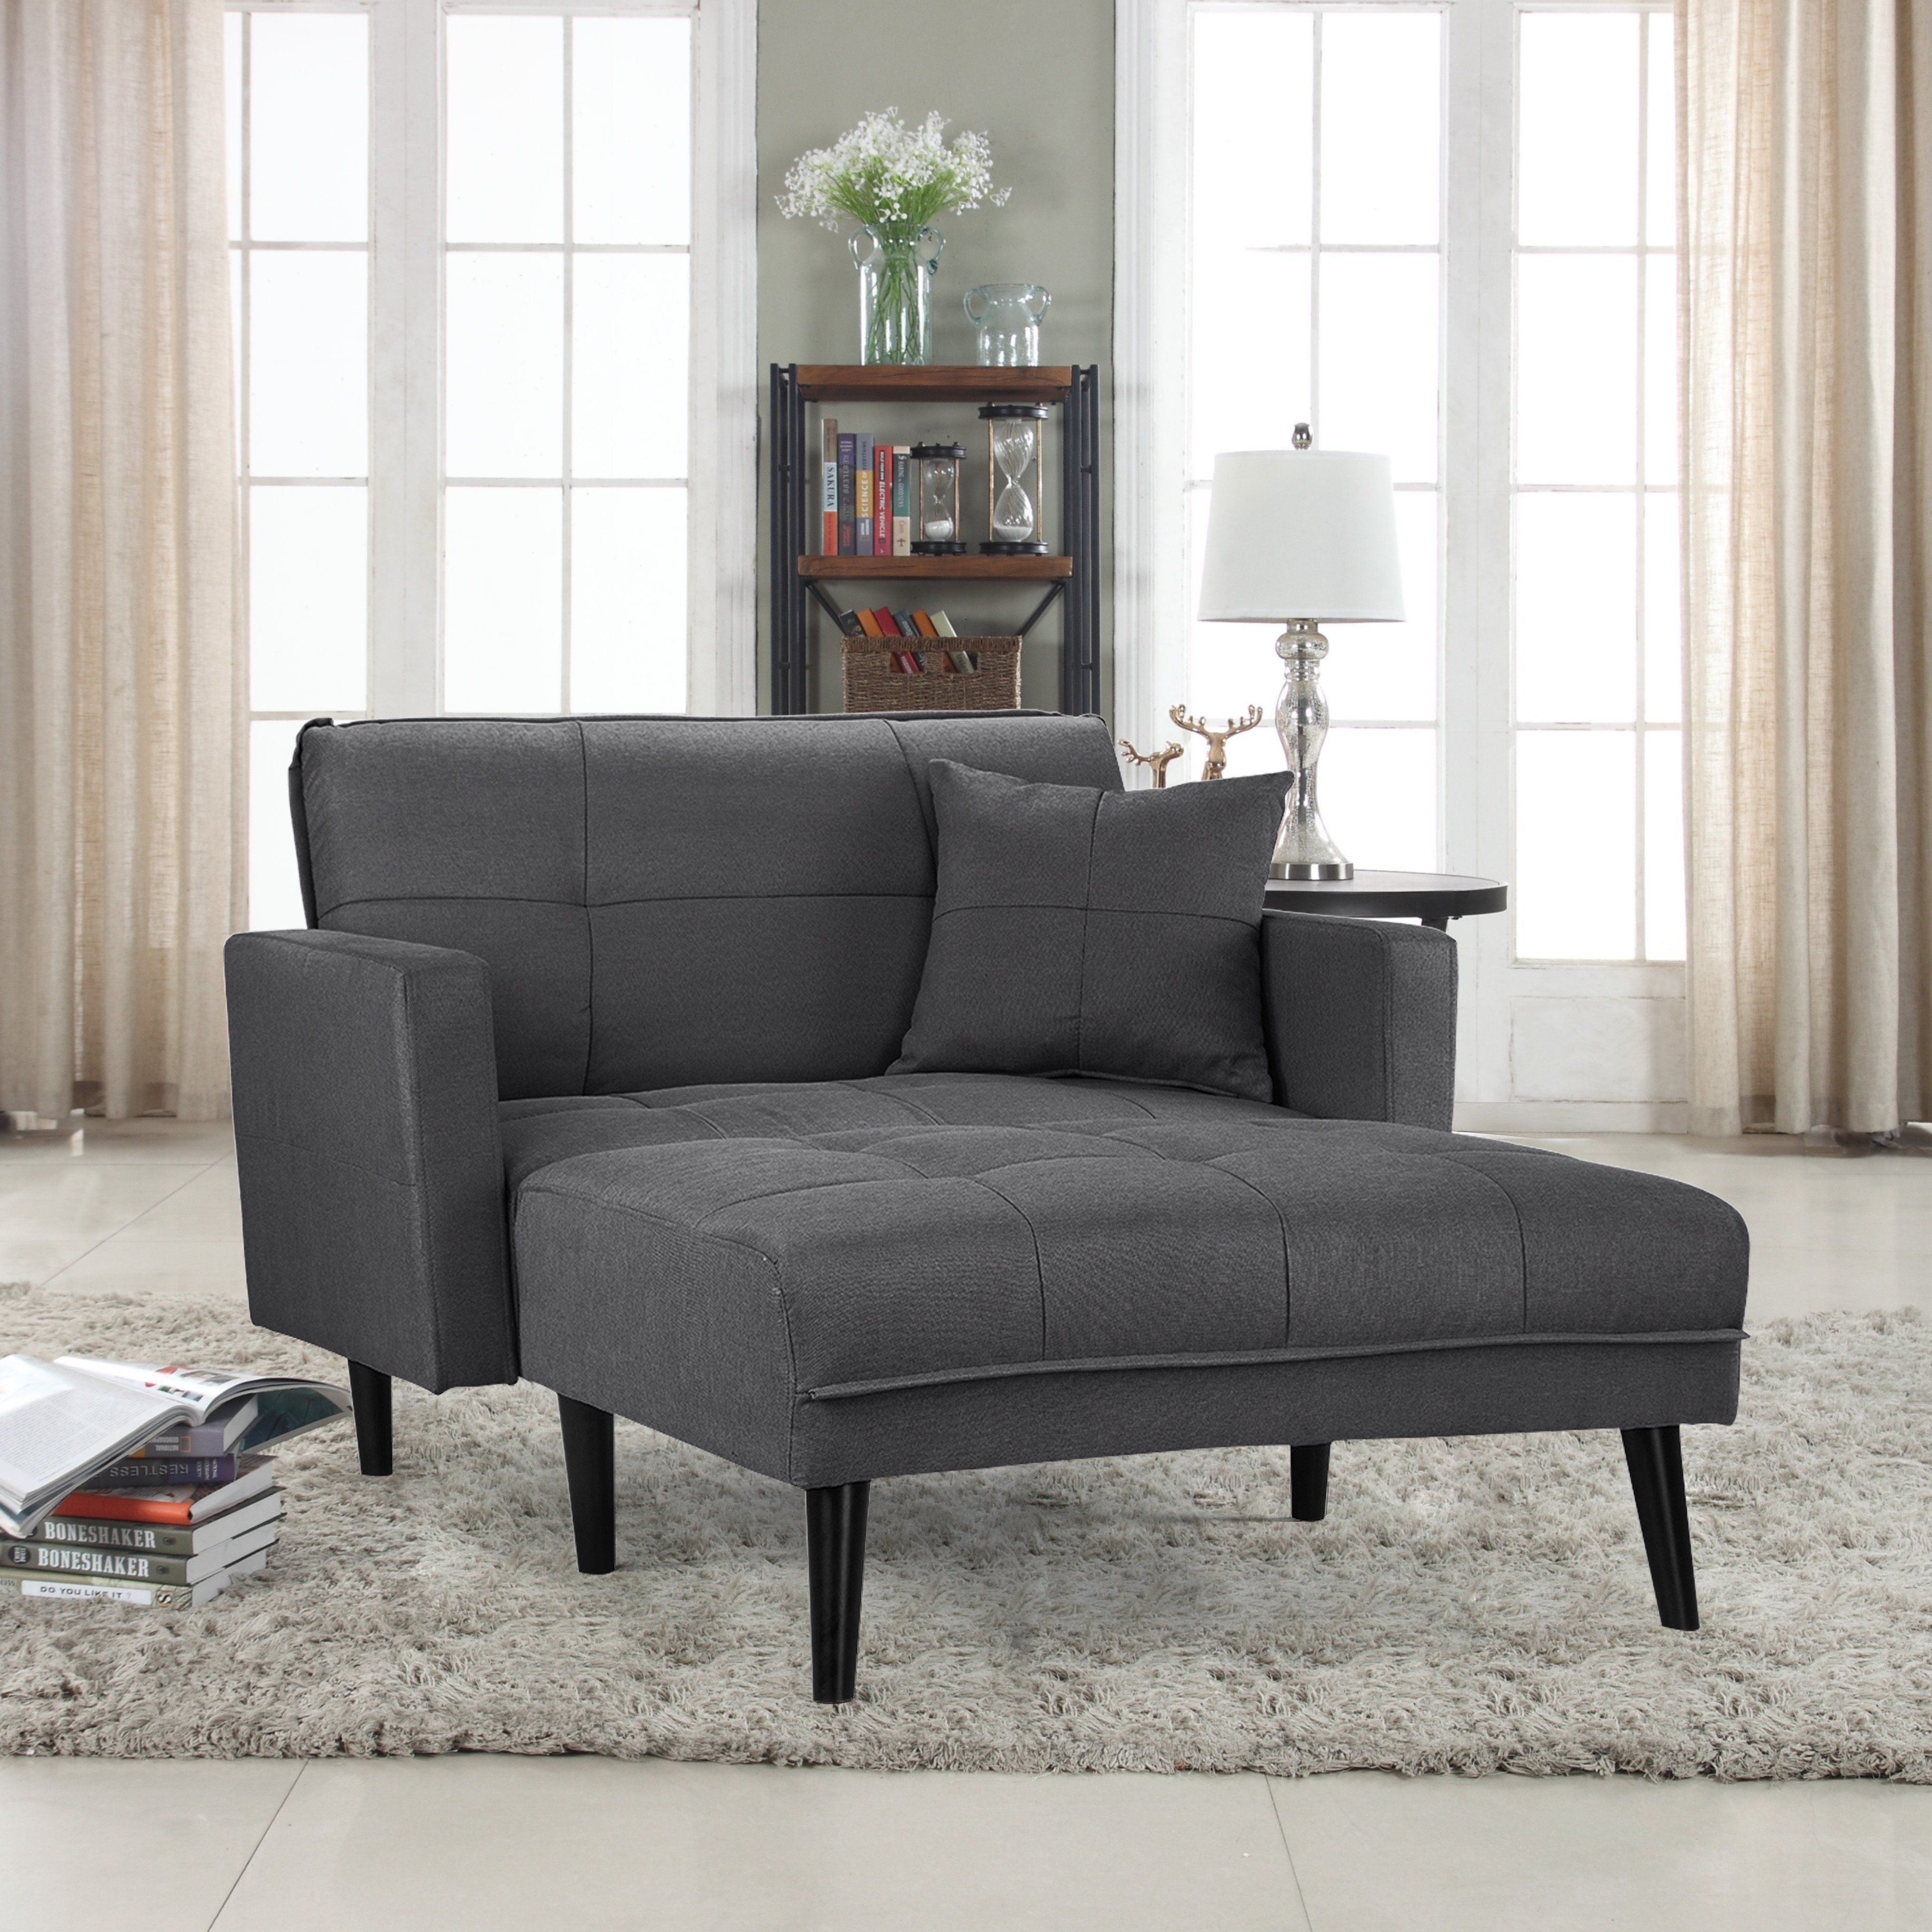 Madrid Contemporary Linen Sleeper Chaise Lounge Home